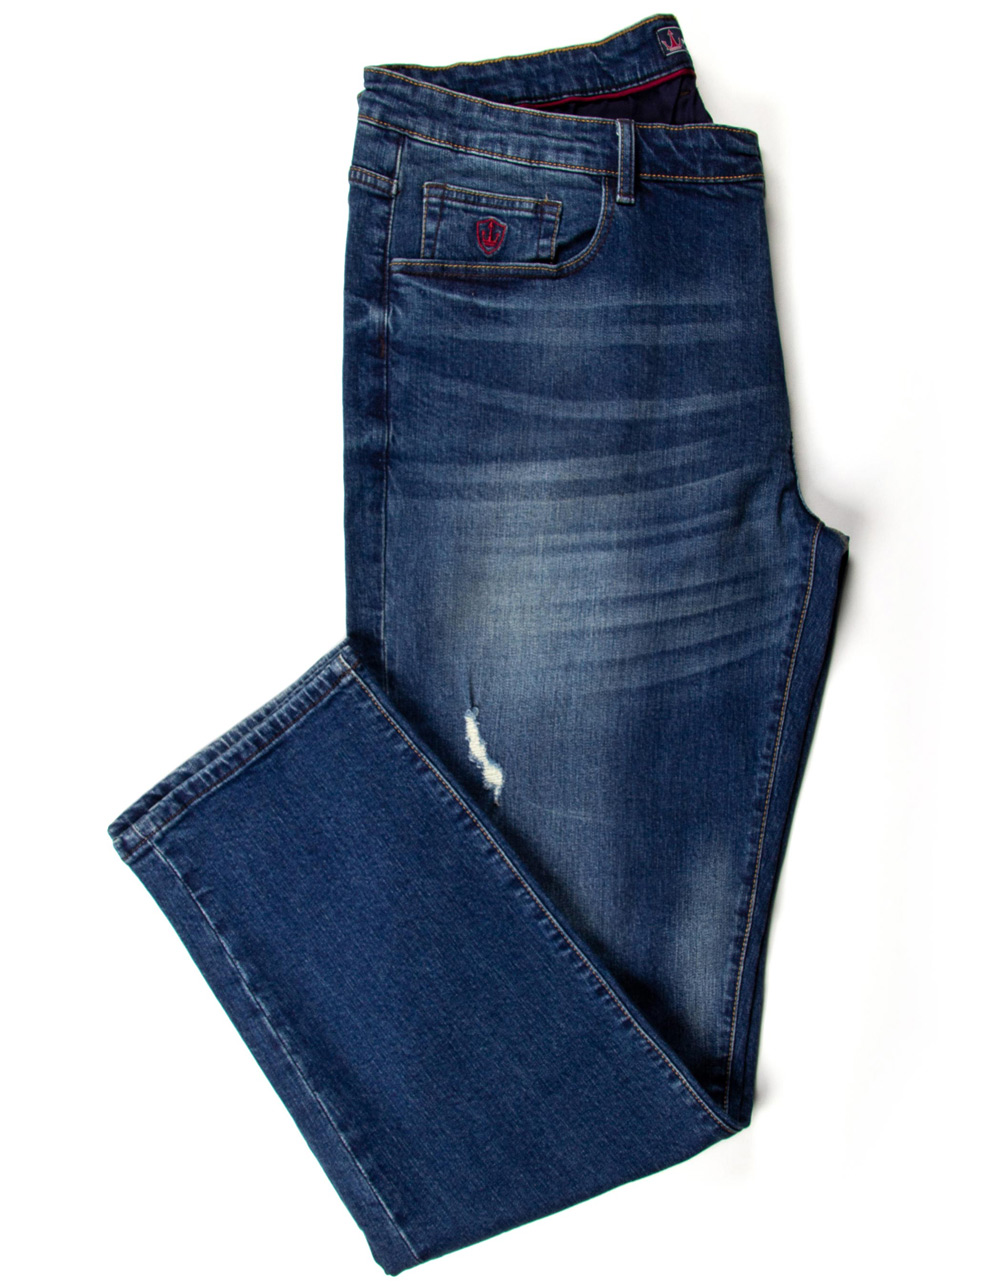 Pantalón tejano regular fit